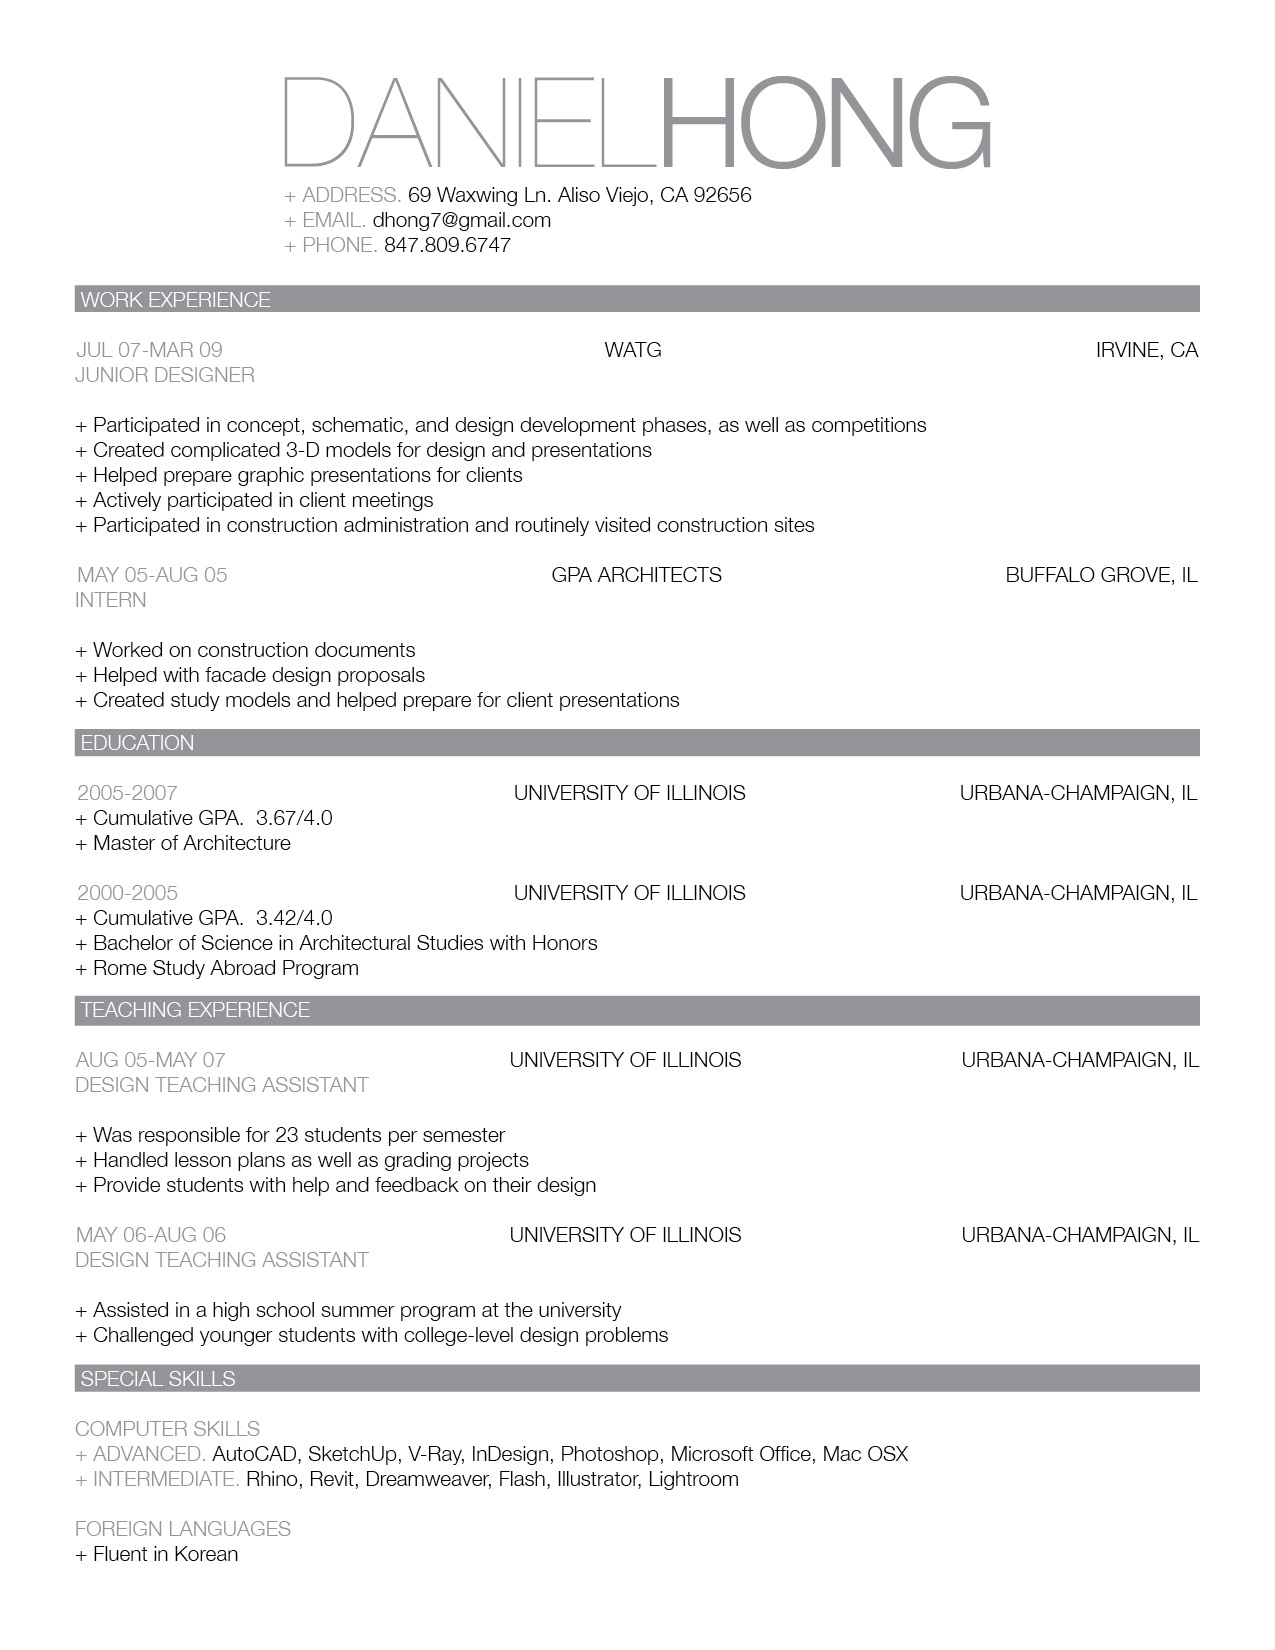 effective resumes co effective resumes - Examples Of Good Resumes